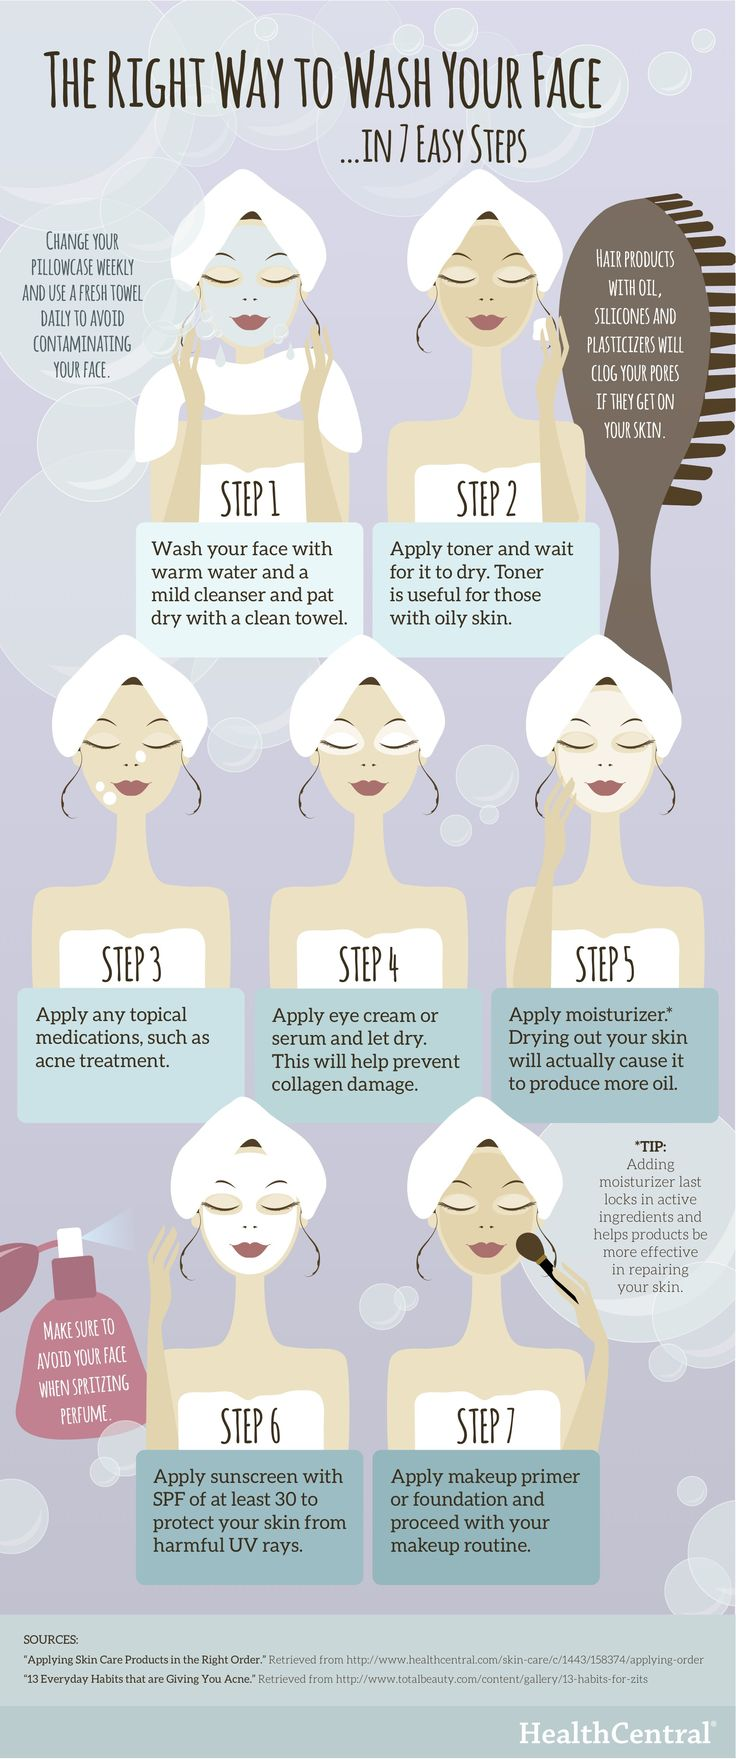 how to wash you face to take proper care of it and help keep your skin healthy